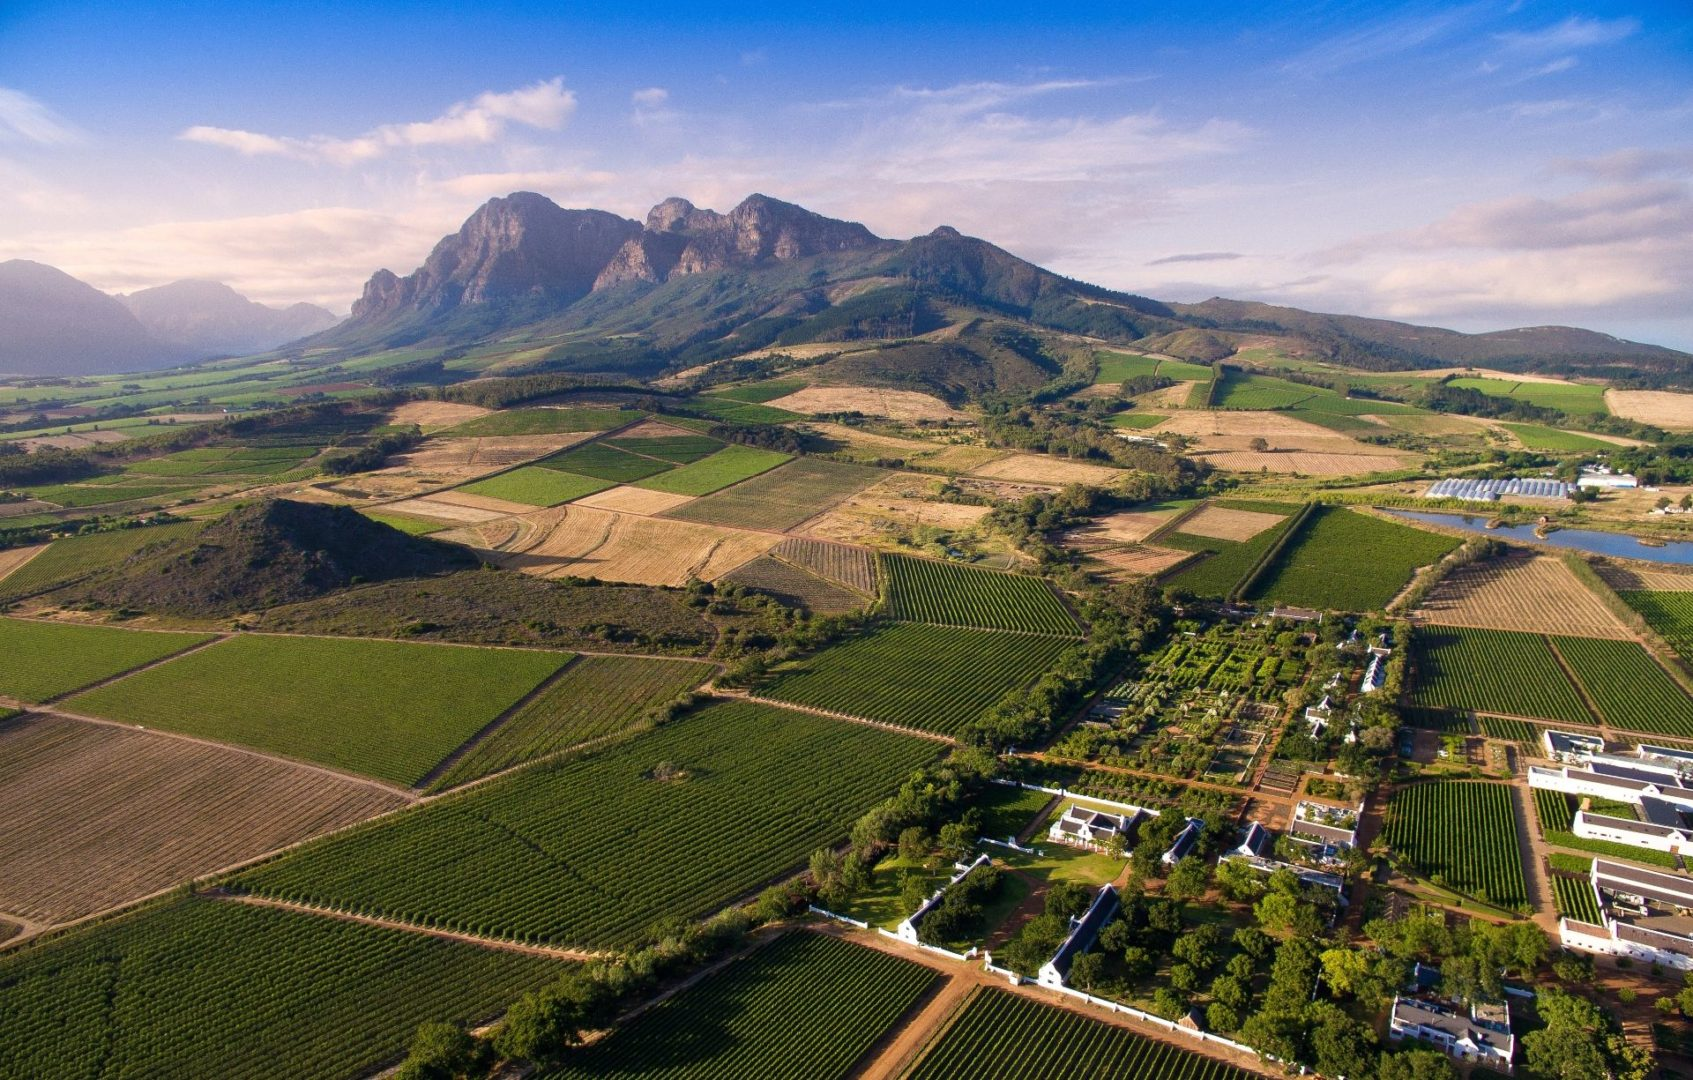 Babylonstoren with Simonsberg in the background